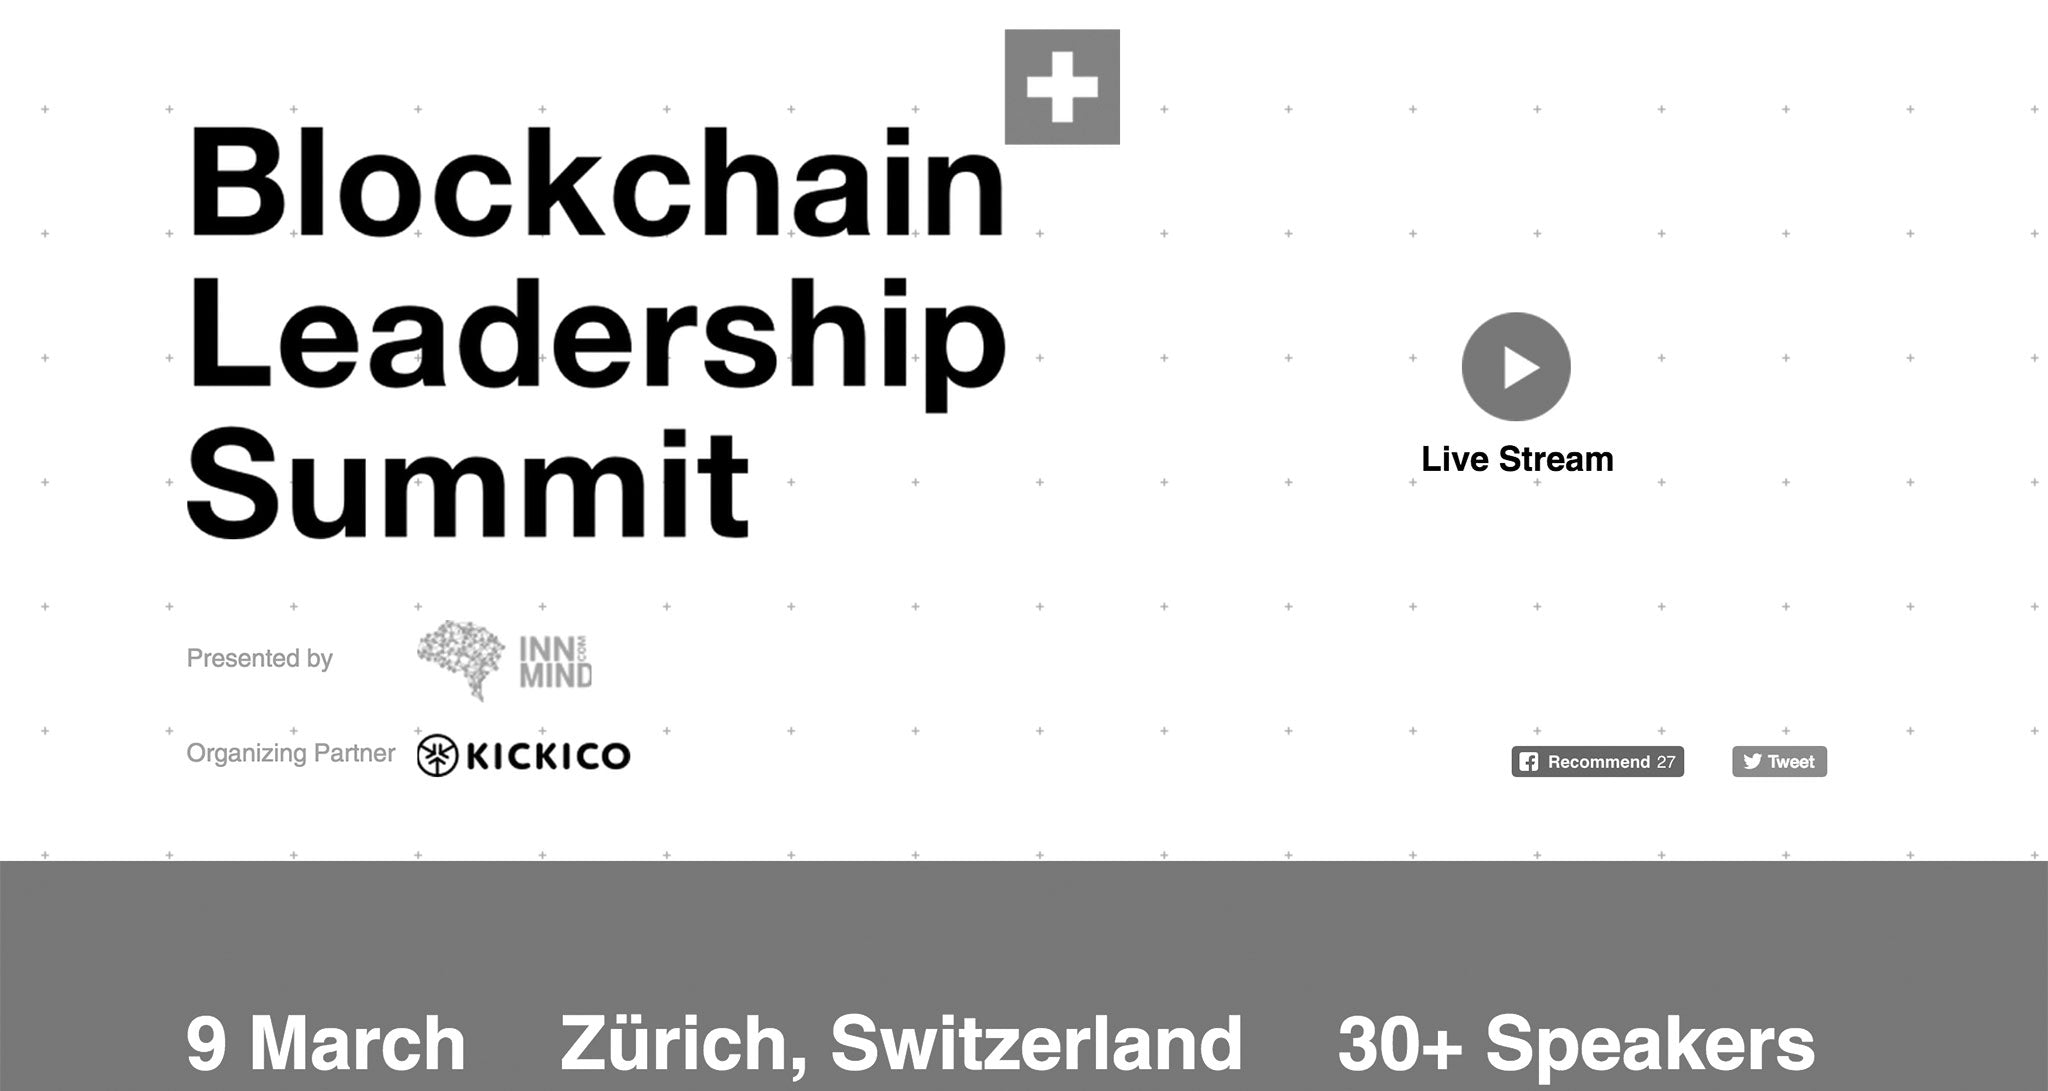 ClearFoundation to Present at Blockchain Leadership Summit 2018 March 9